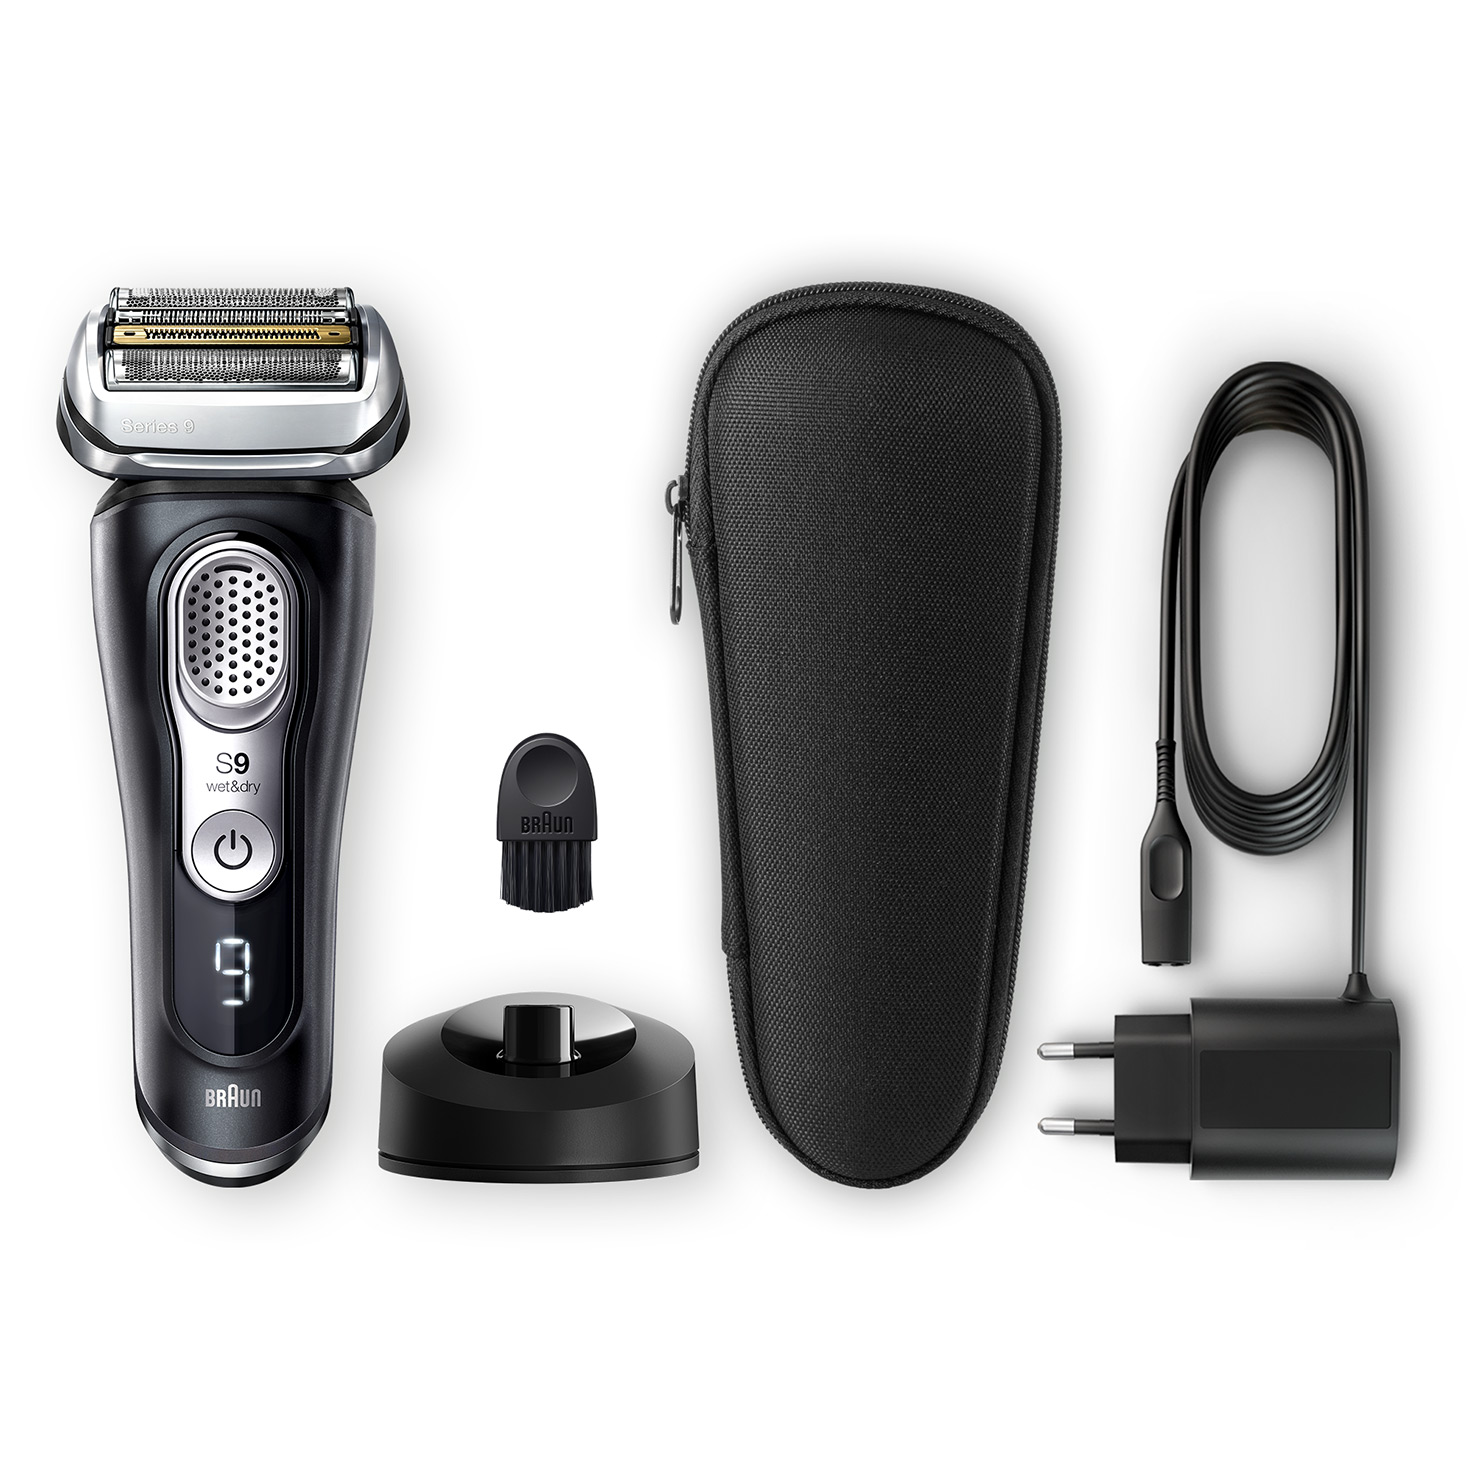 Series 9 9340s shaver - What´s in the box